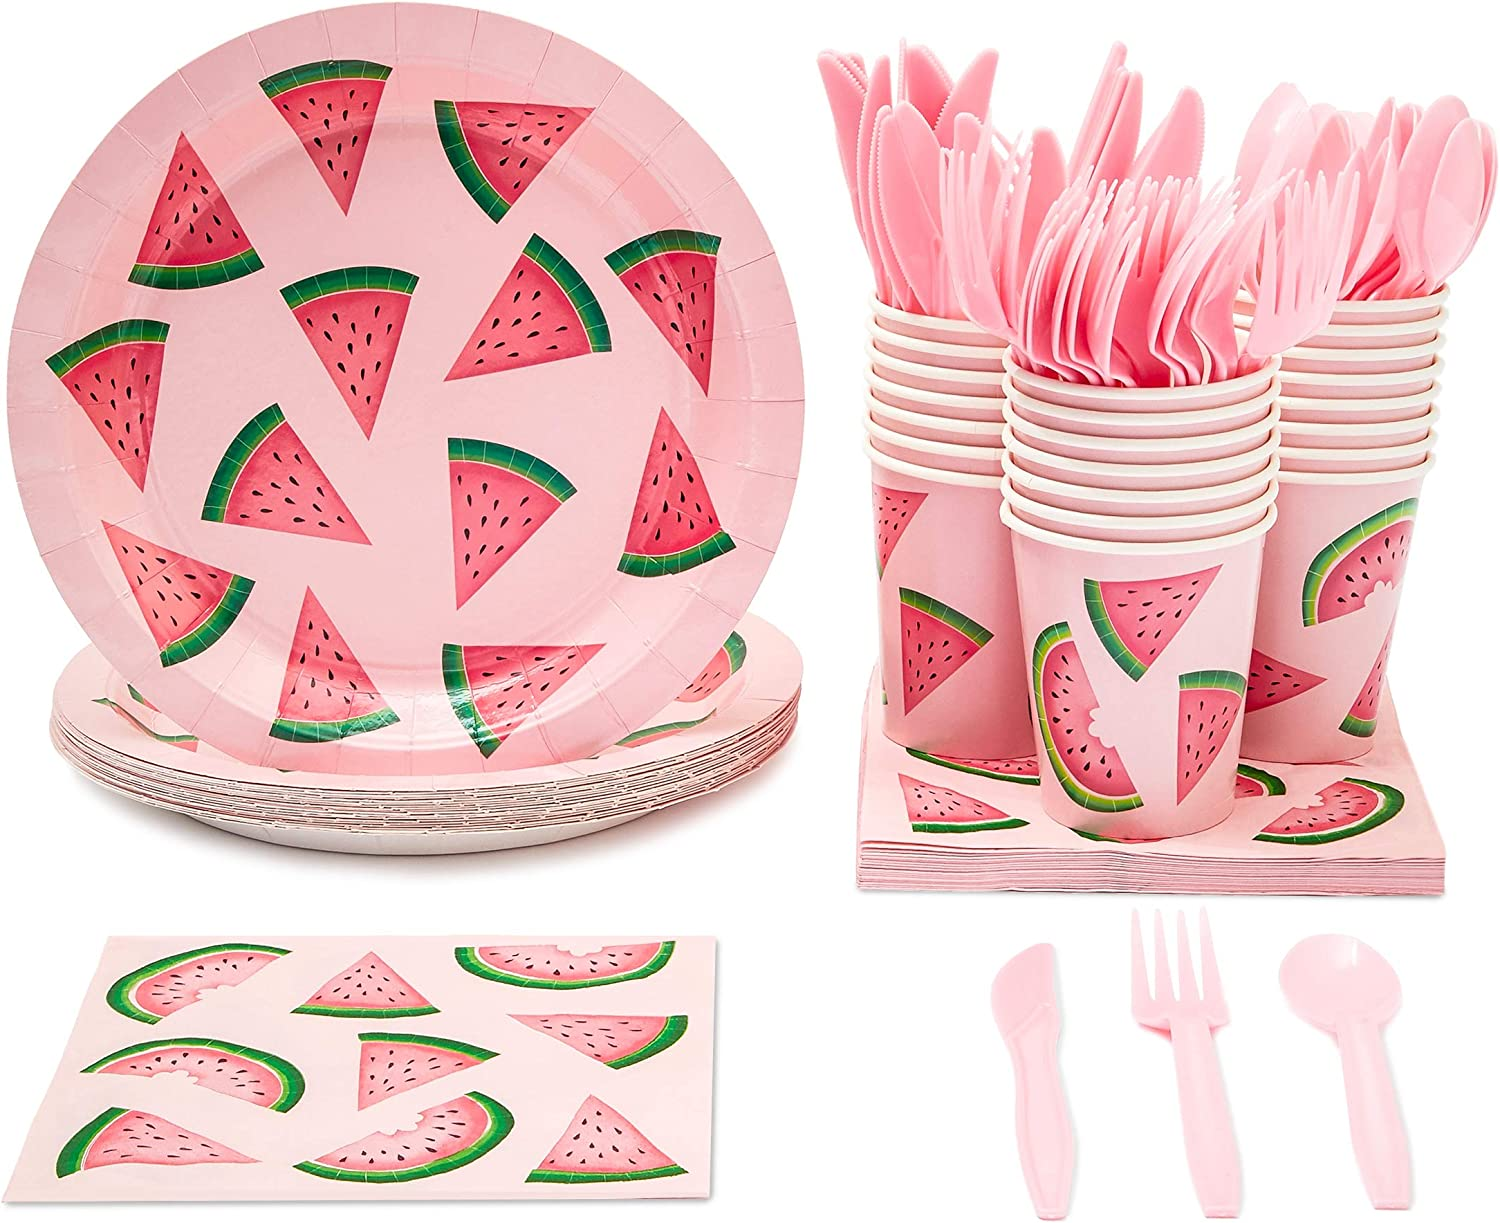 Watermelon Party Supplies, Paper Plates, Napkins, Cups and Plastic Cutlery (Serves 24, 144 Pieces)